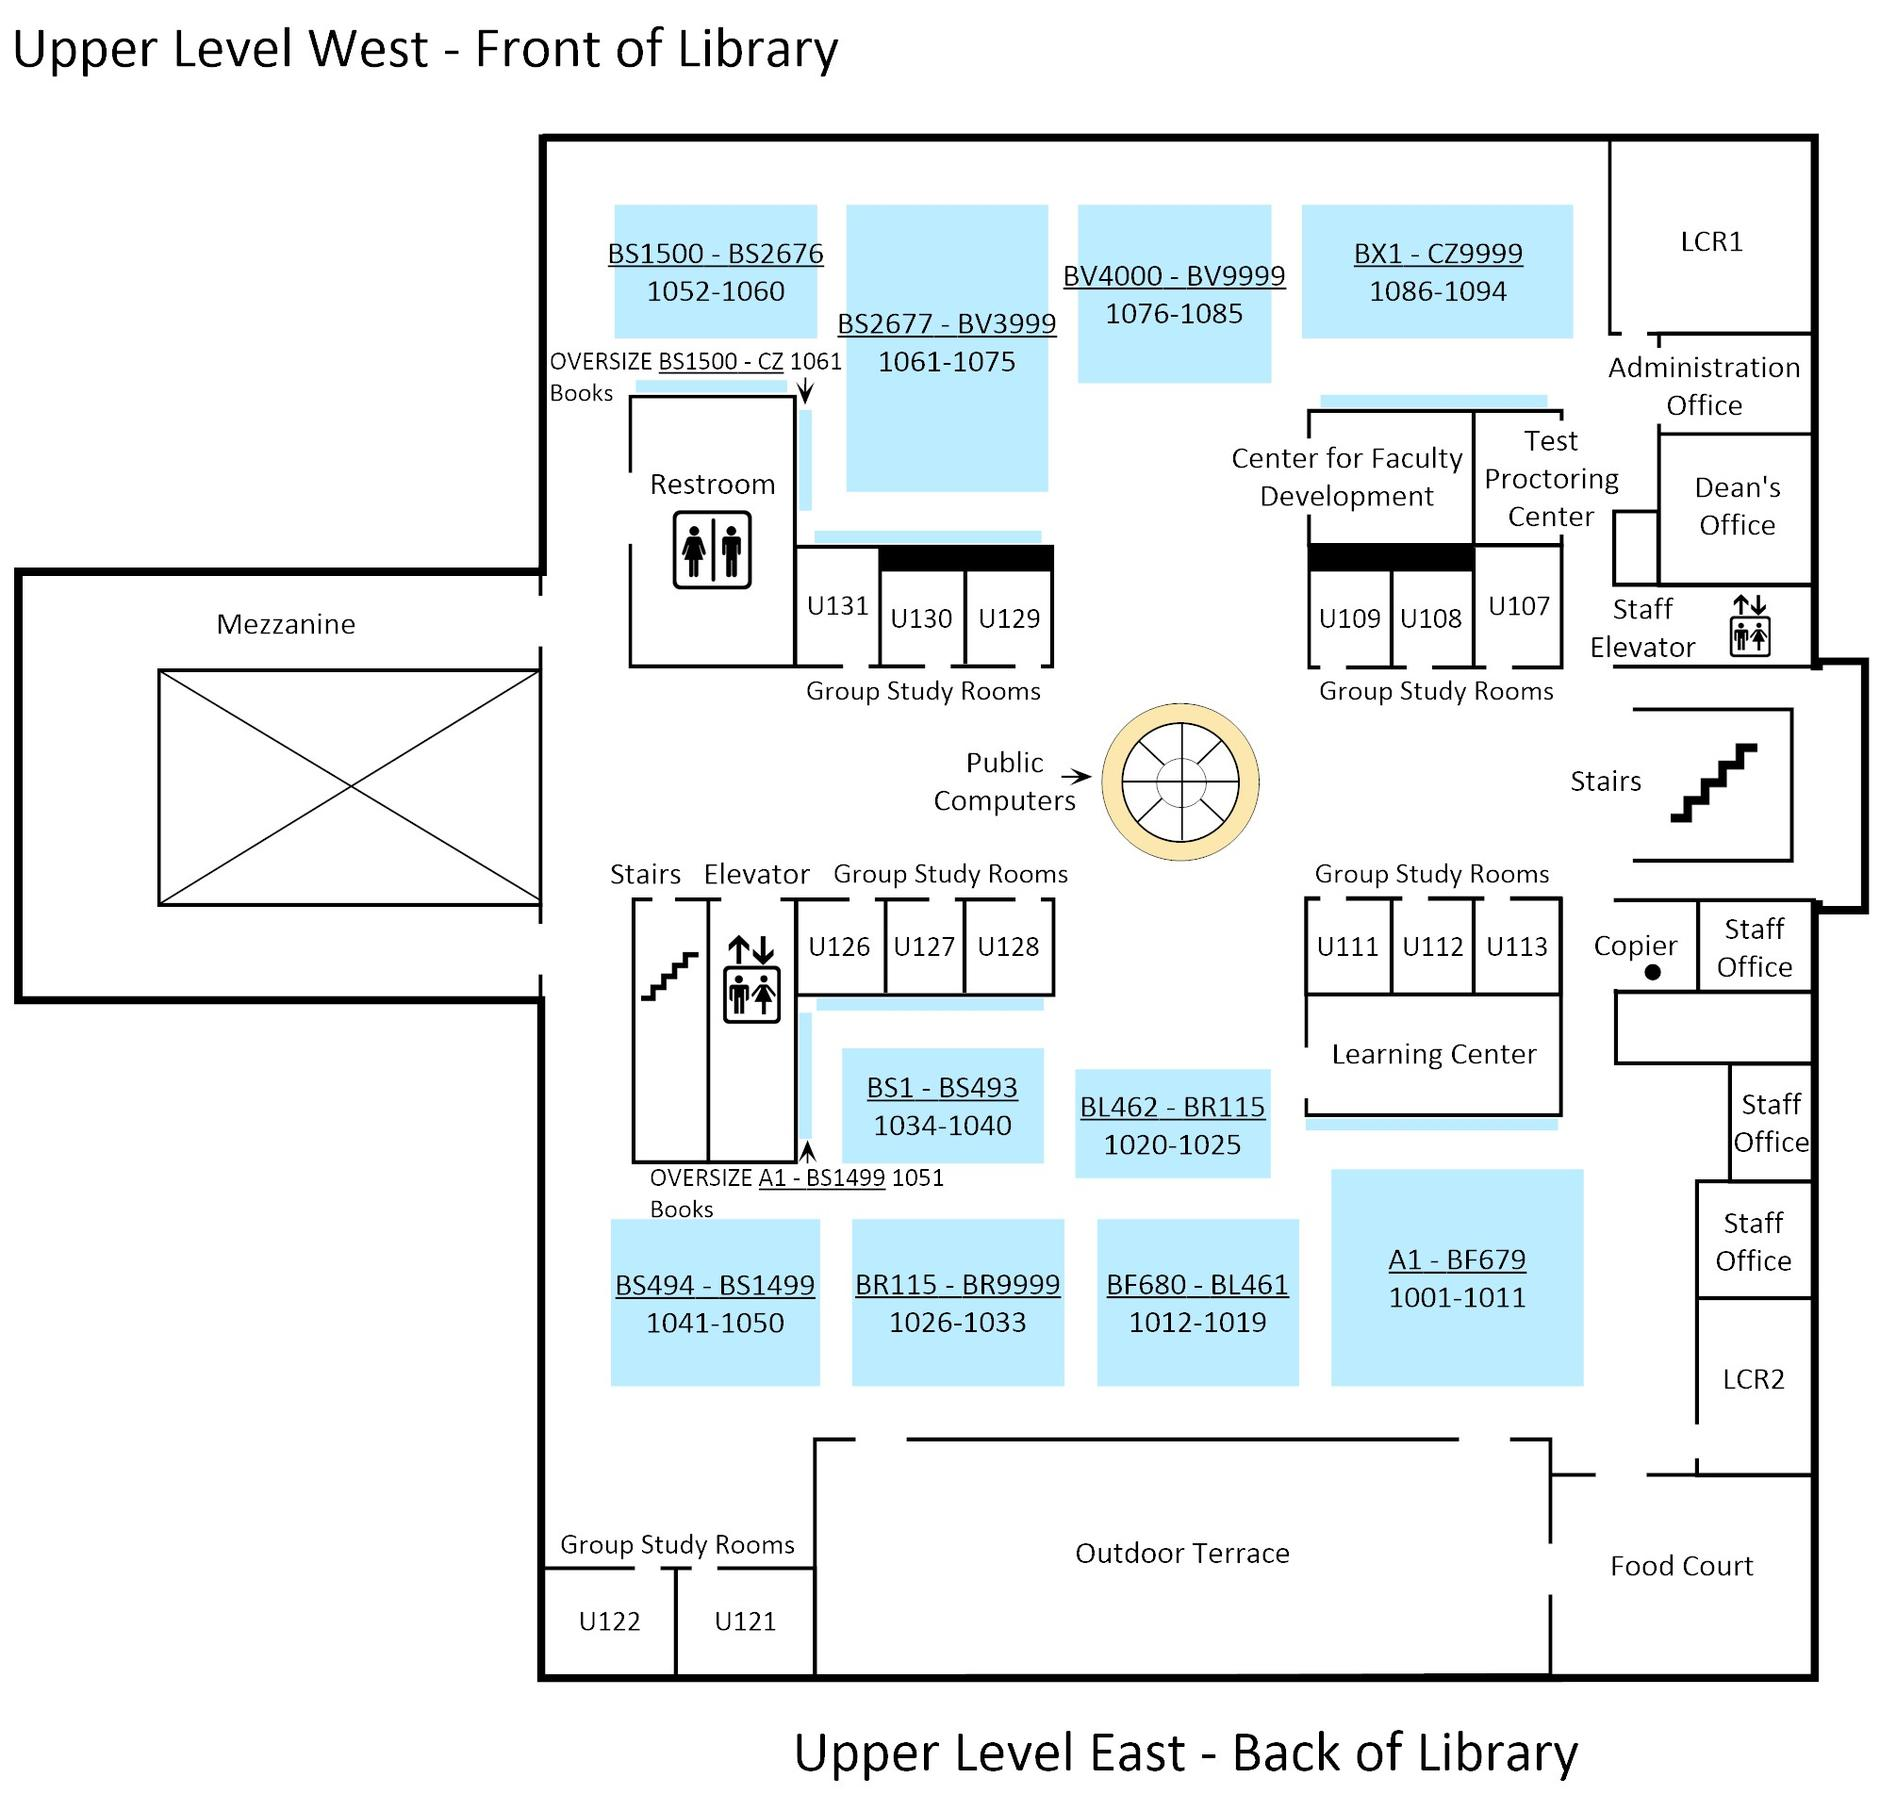 Full size floor plan for upper level of Biola's library